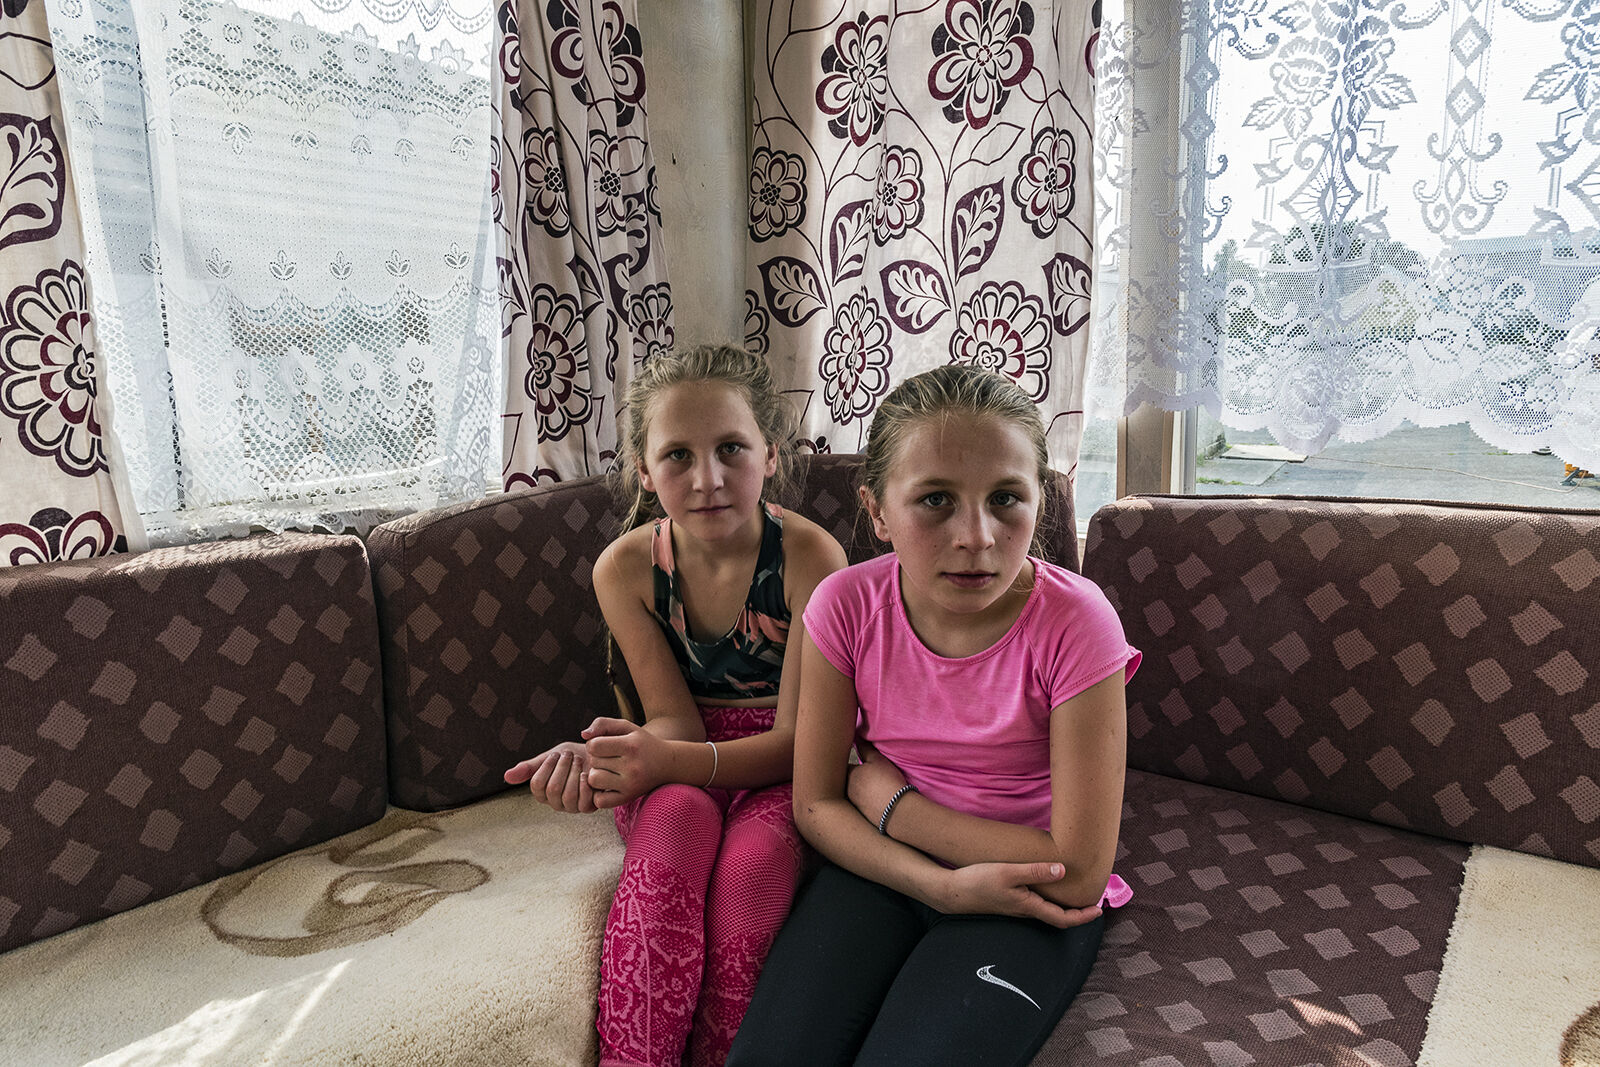 Chloe and Britney, Sisters, Tipperary, Ireland 2020